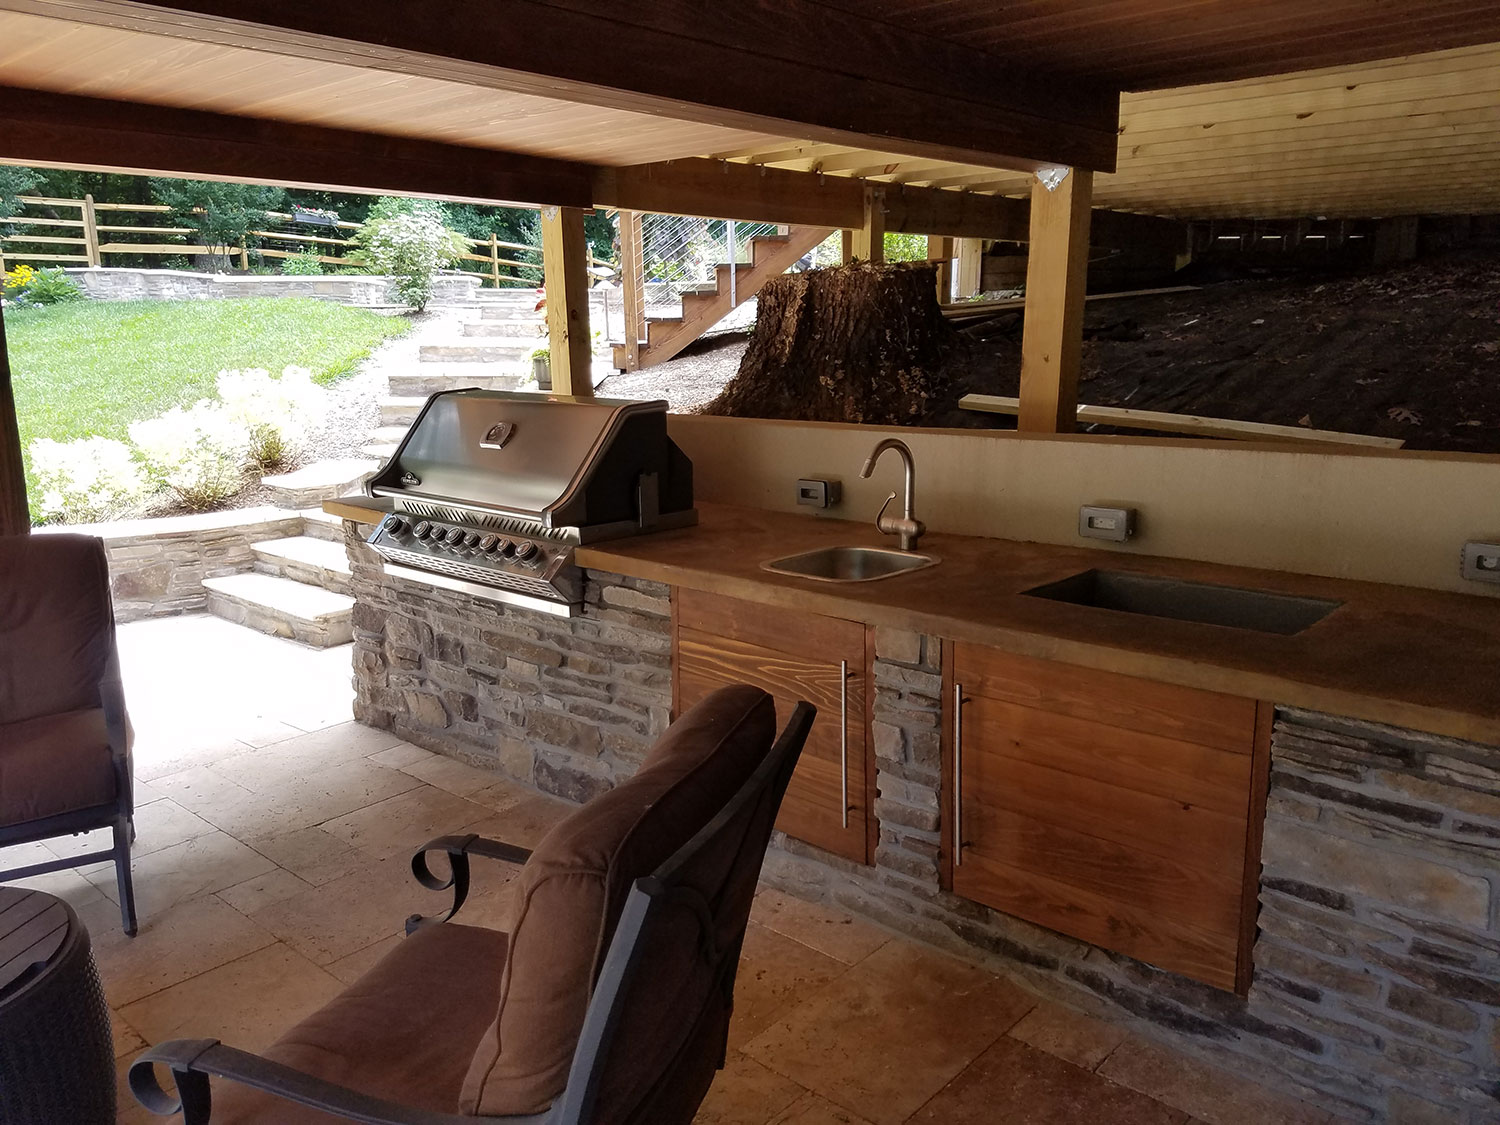 Fireplaces & Outdoor Kitchens - Revolutionary Gardens on Patio Kitchen id=35622